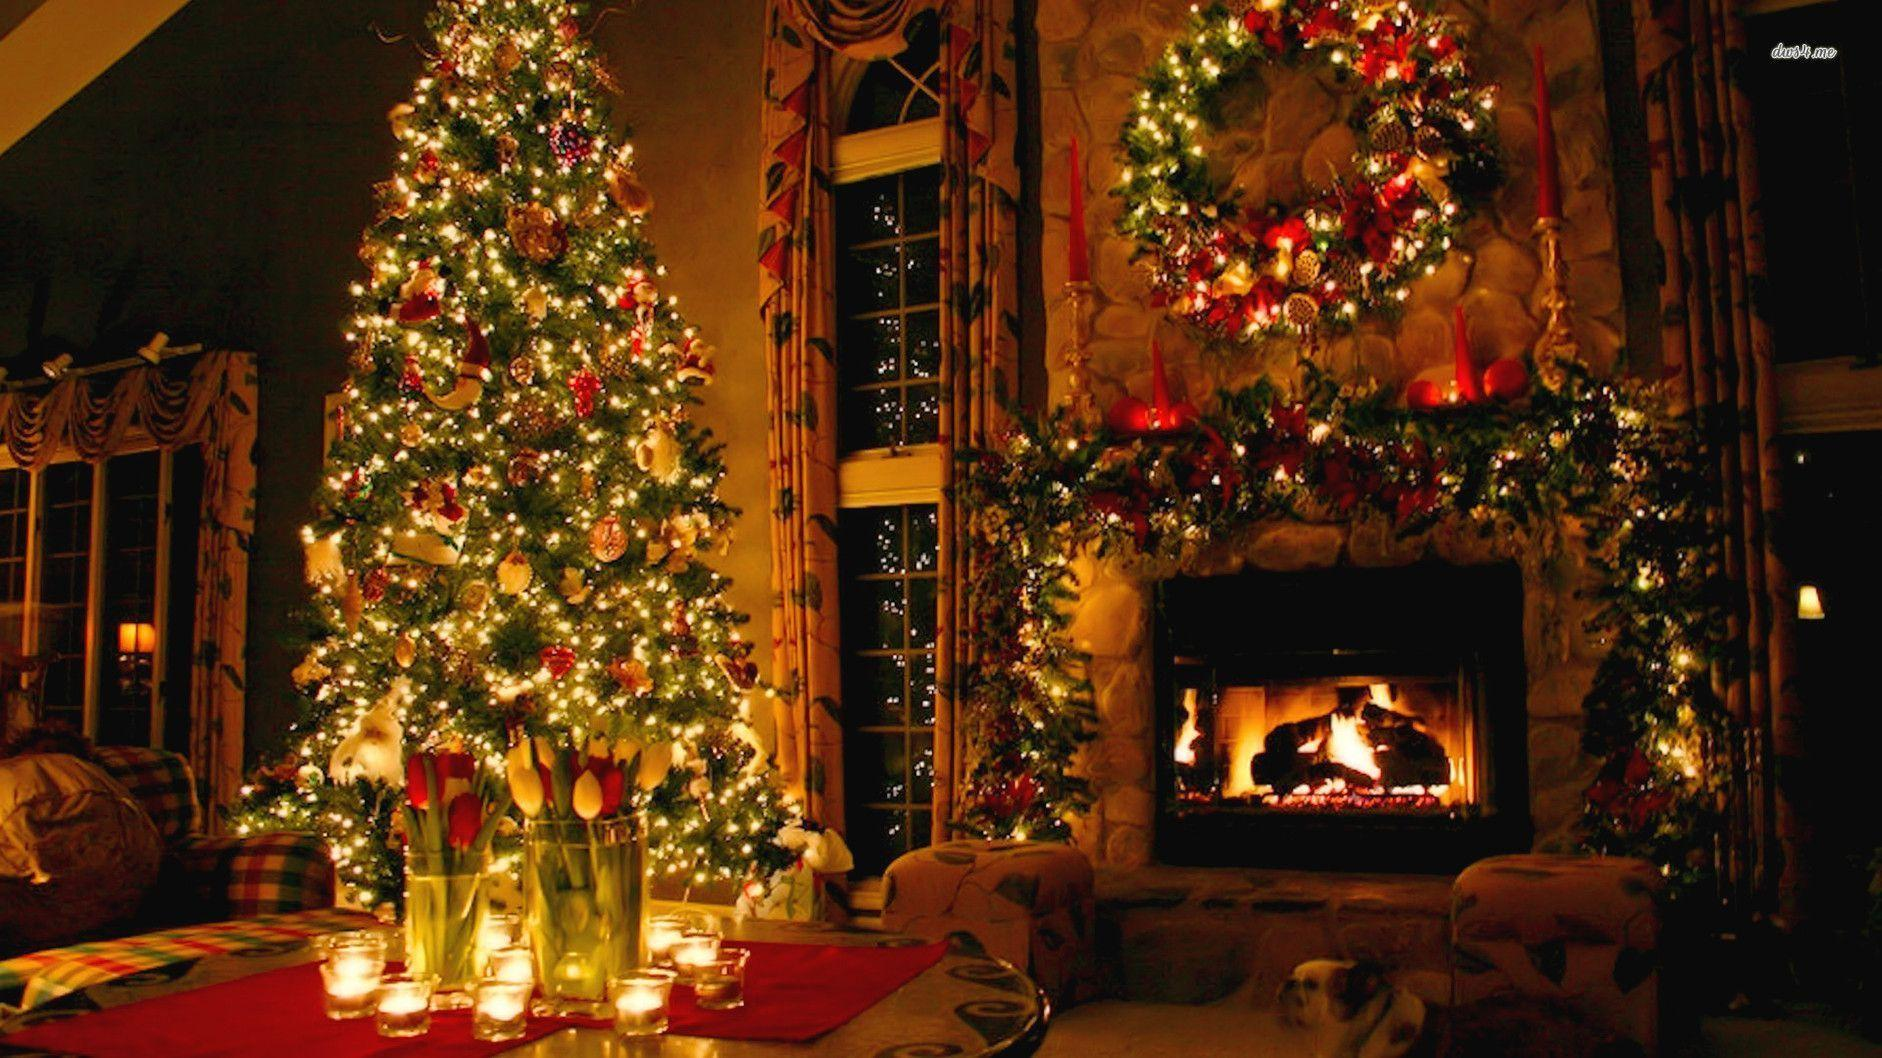 Christmas fireplace backgrounds wallpaper cave for Home christmas decorations uk